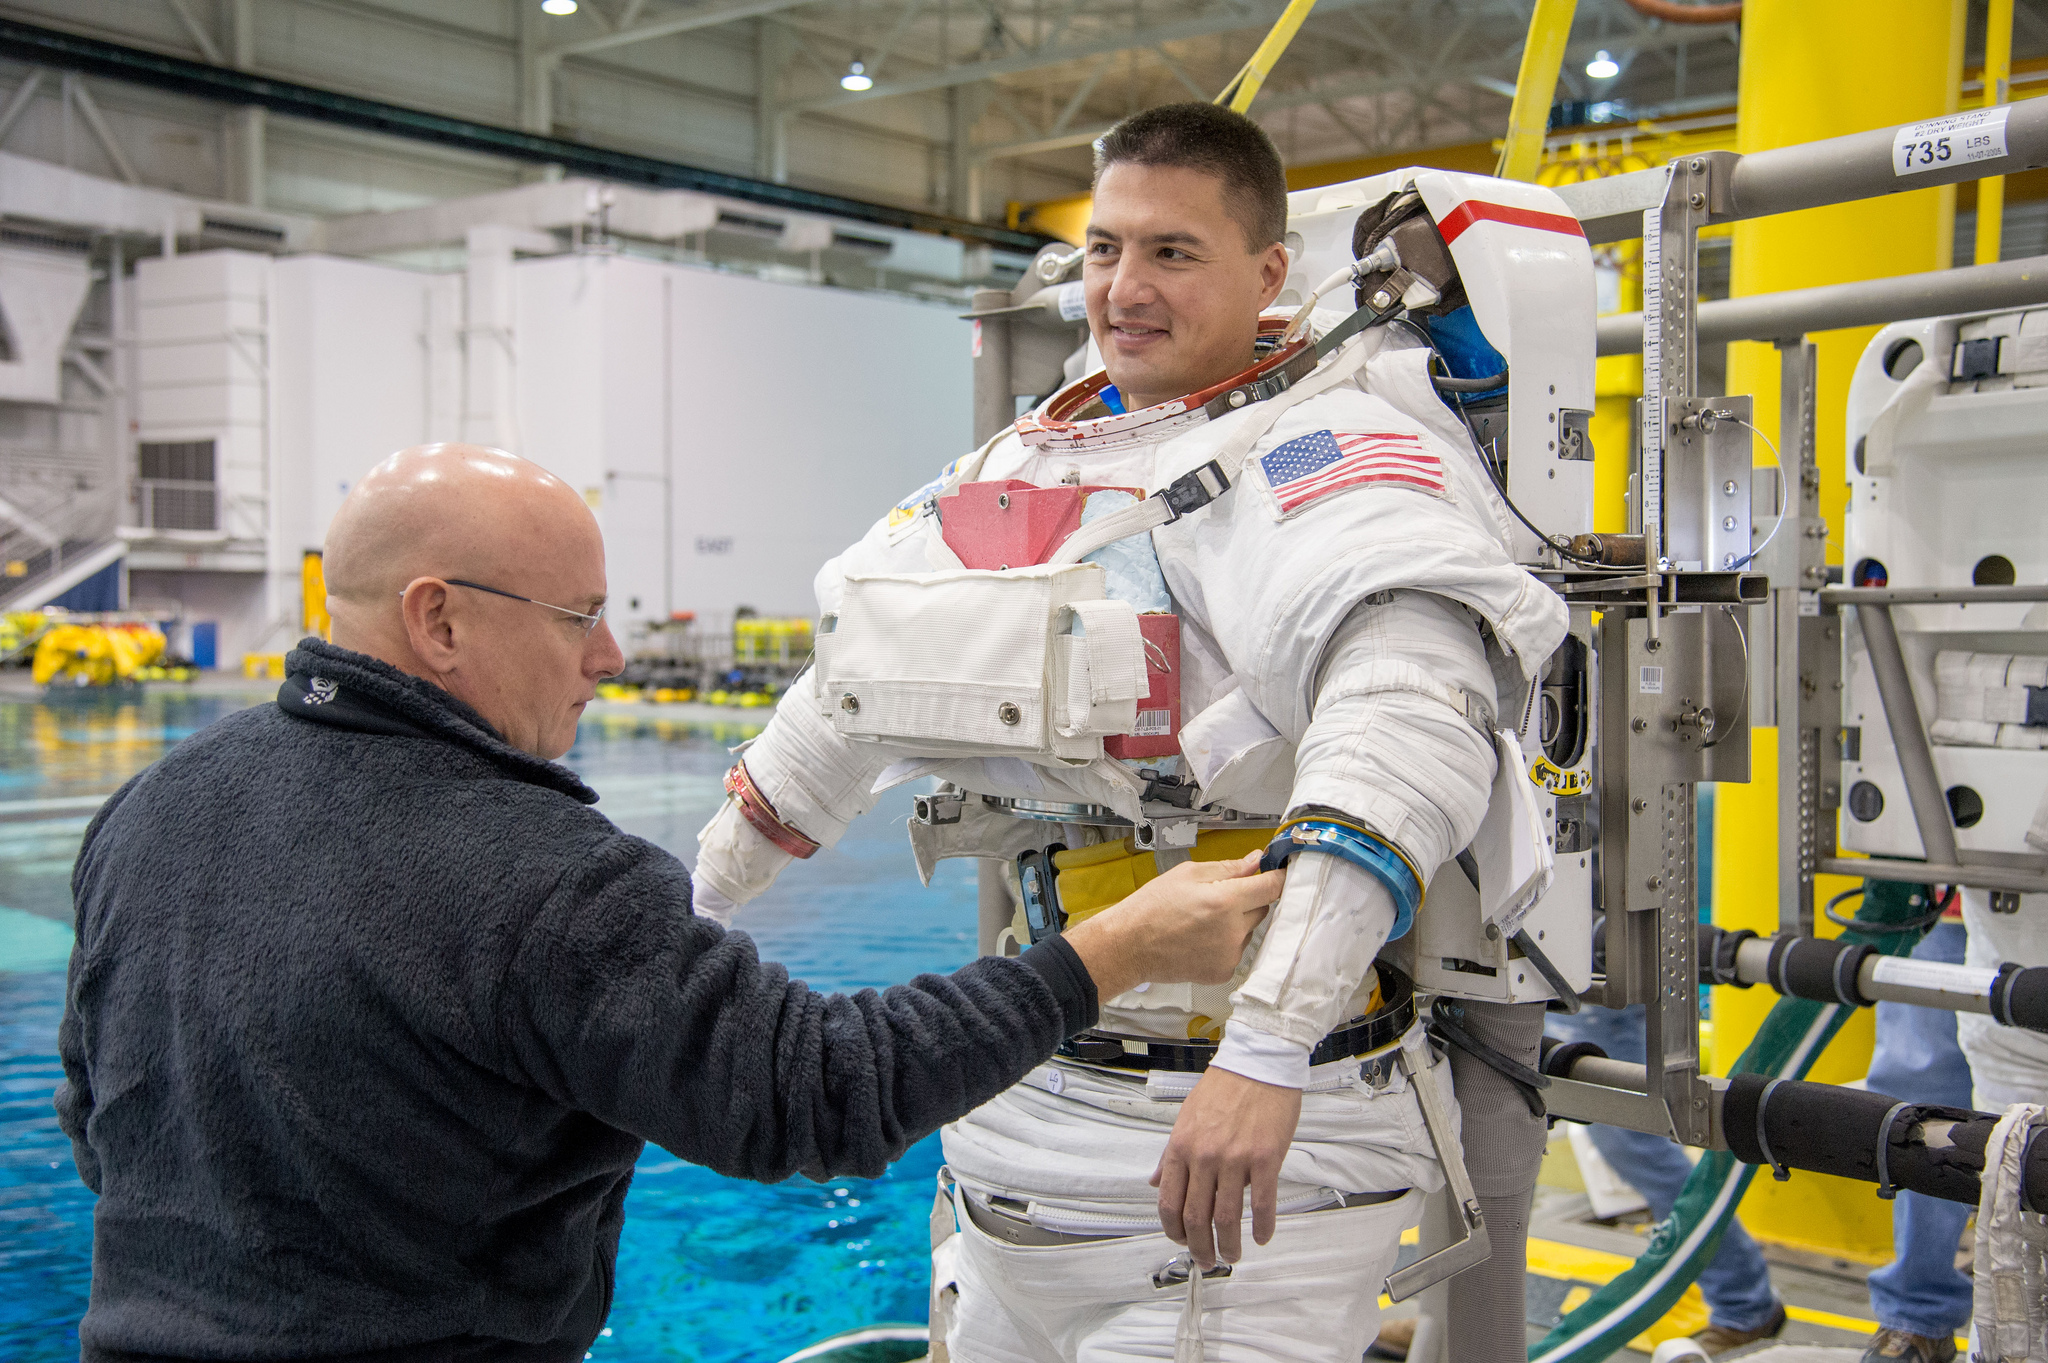 Preparing to make a house call: Scott Kelly, currently aboard the space station for a one-year stay, checks out spacewalk suit of space doc Kjell Lindgren, who blasts off next month